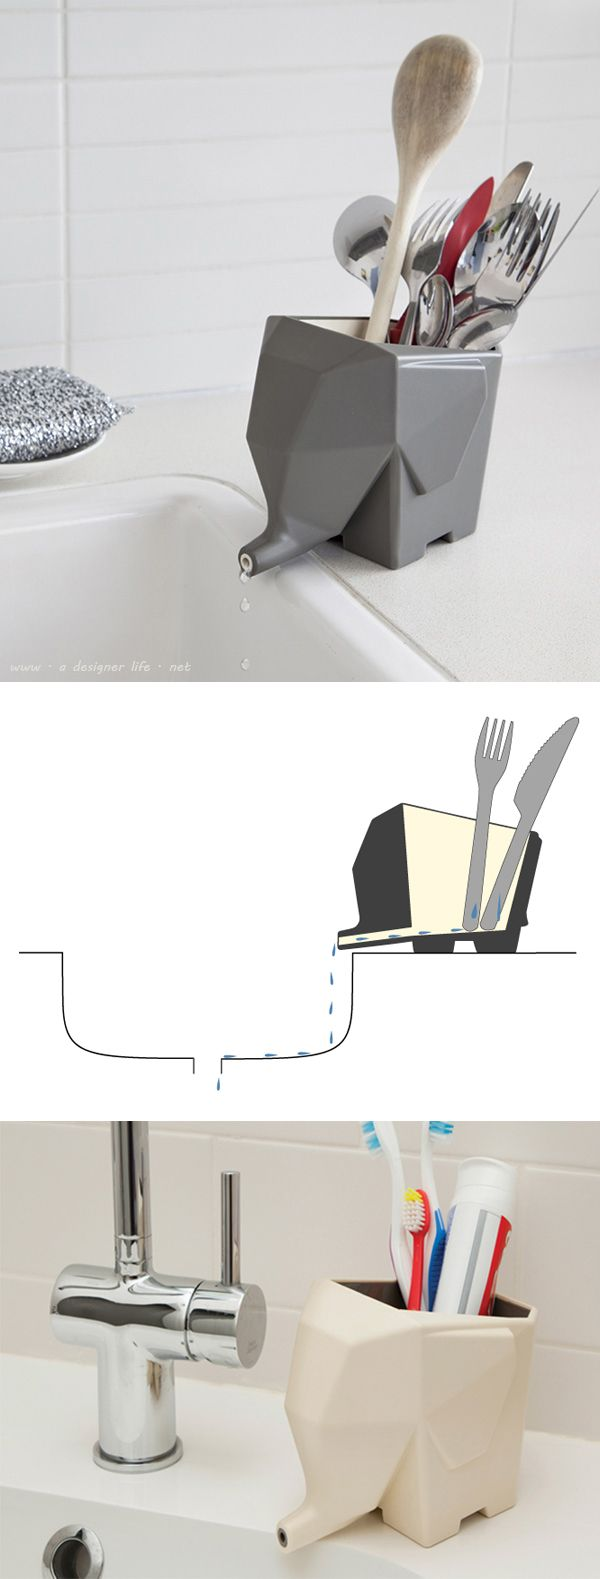 Elephant Cutlery Drainer. What a fun way to drain and store silverware.